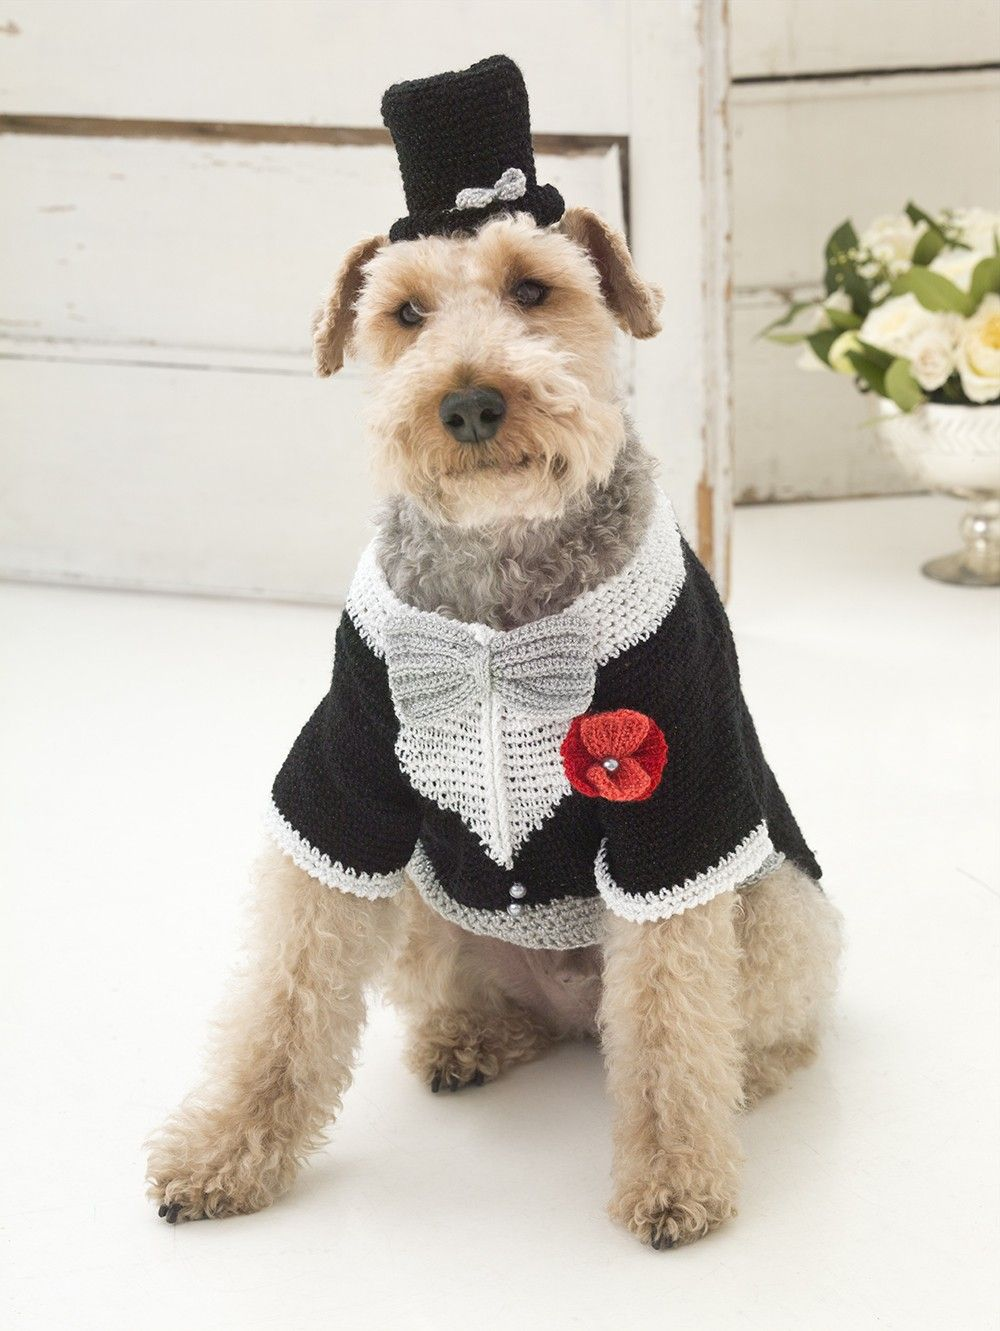 The Barking Groom Tuxedo And Top Hat (Crochet) | Crochet Dreams ...